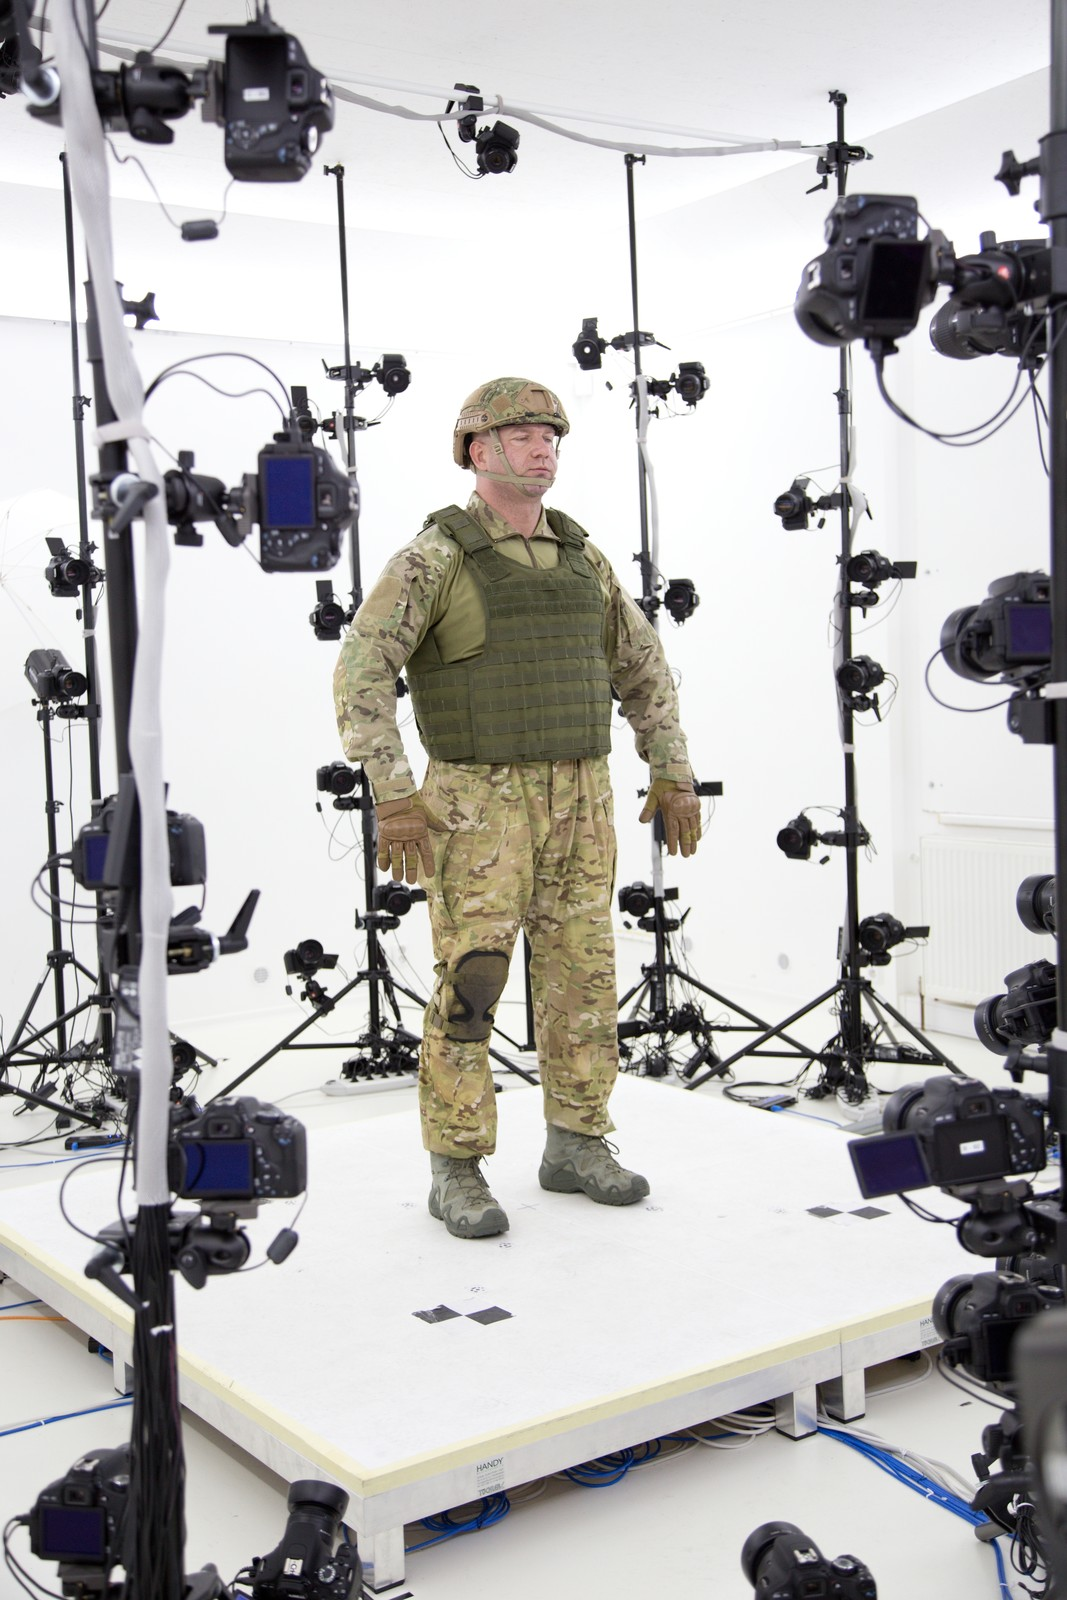 Step 1: Simmer Rich the actor for one hour under the bright bulbs of an evenly-lit room. Dress the actor according to taste. Be sure to rotate and regularly change the configuration of his gear until you are happy with the resulting photos.